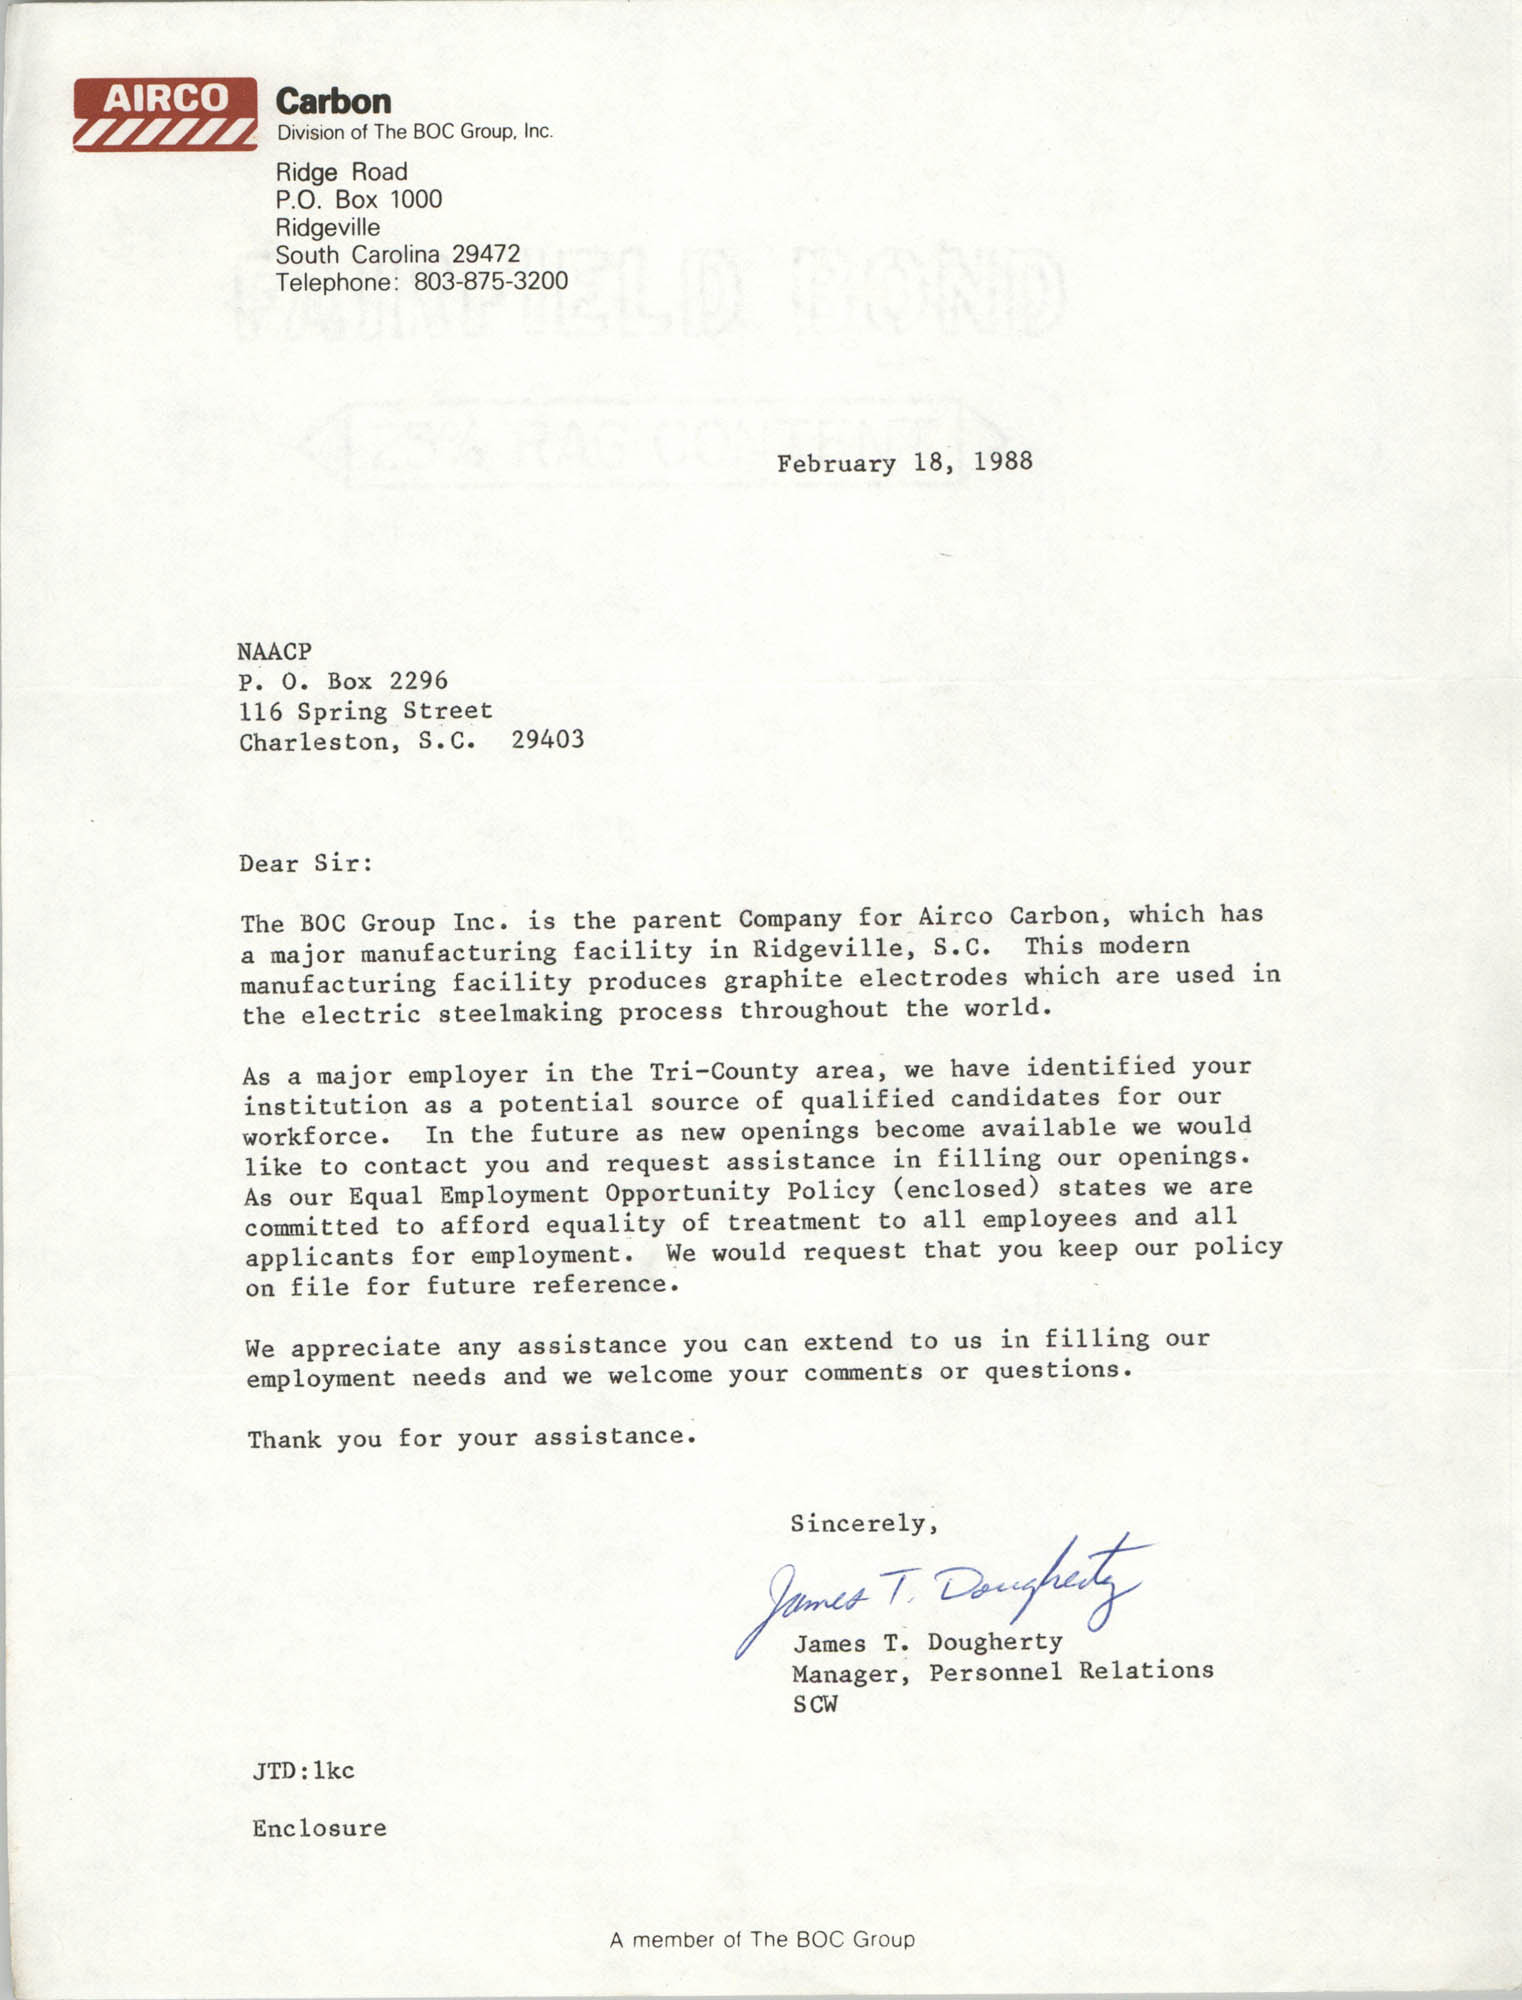 Letter from James T. Dougherty to Charleston Branch of the NAACP, February 18, 1988